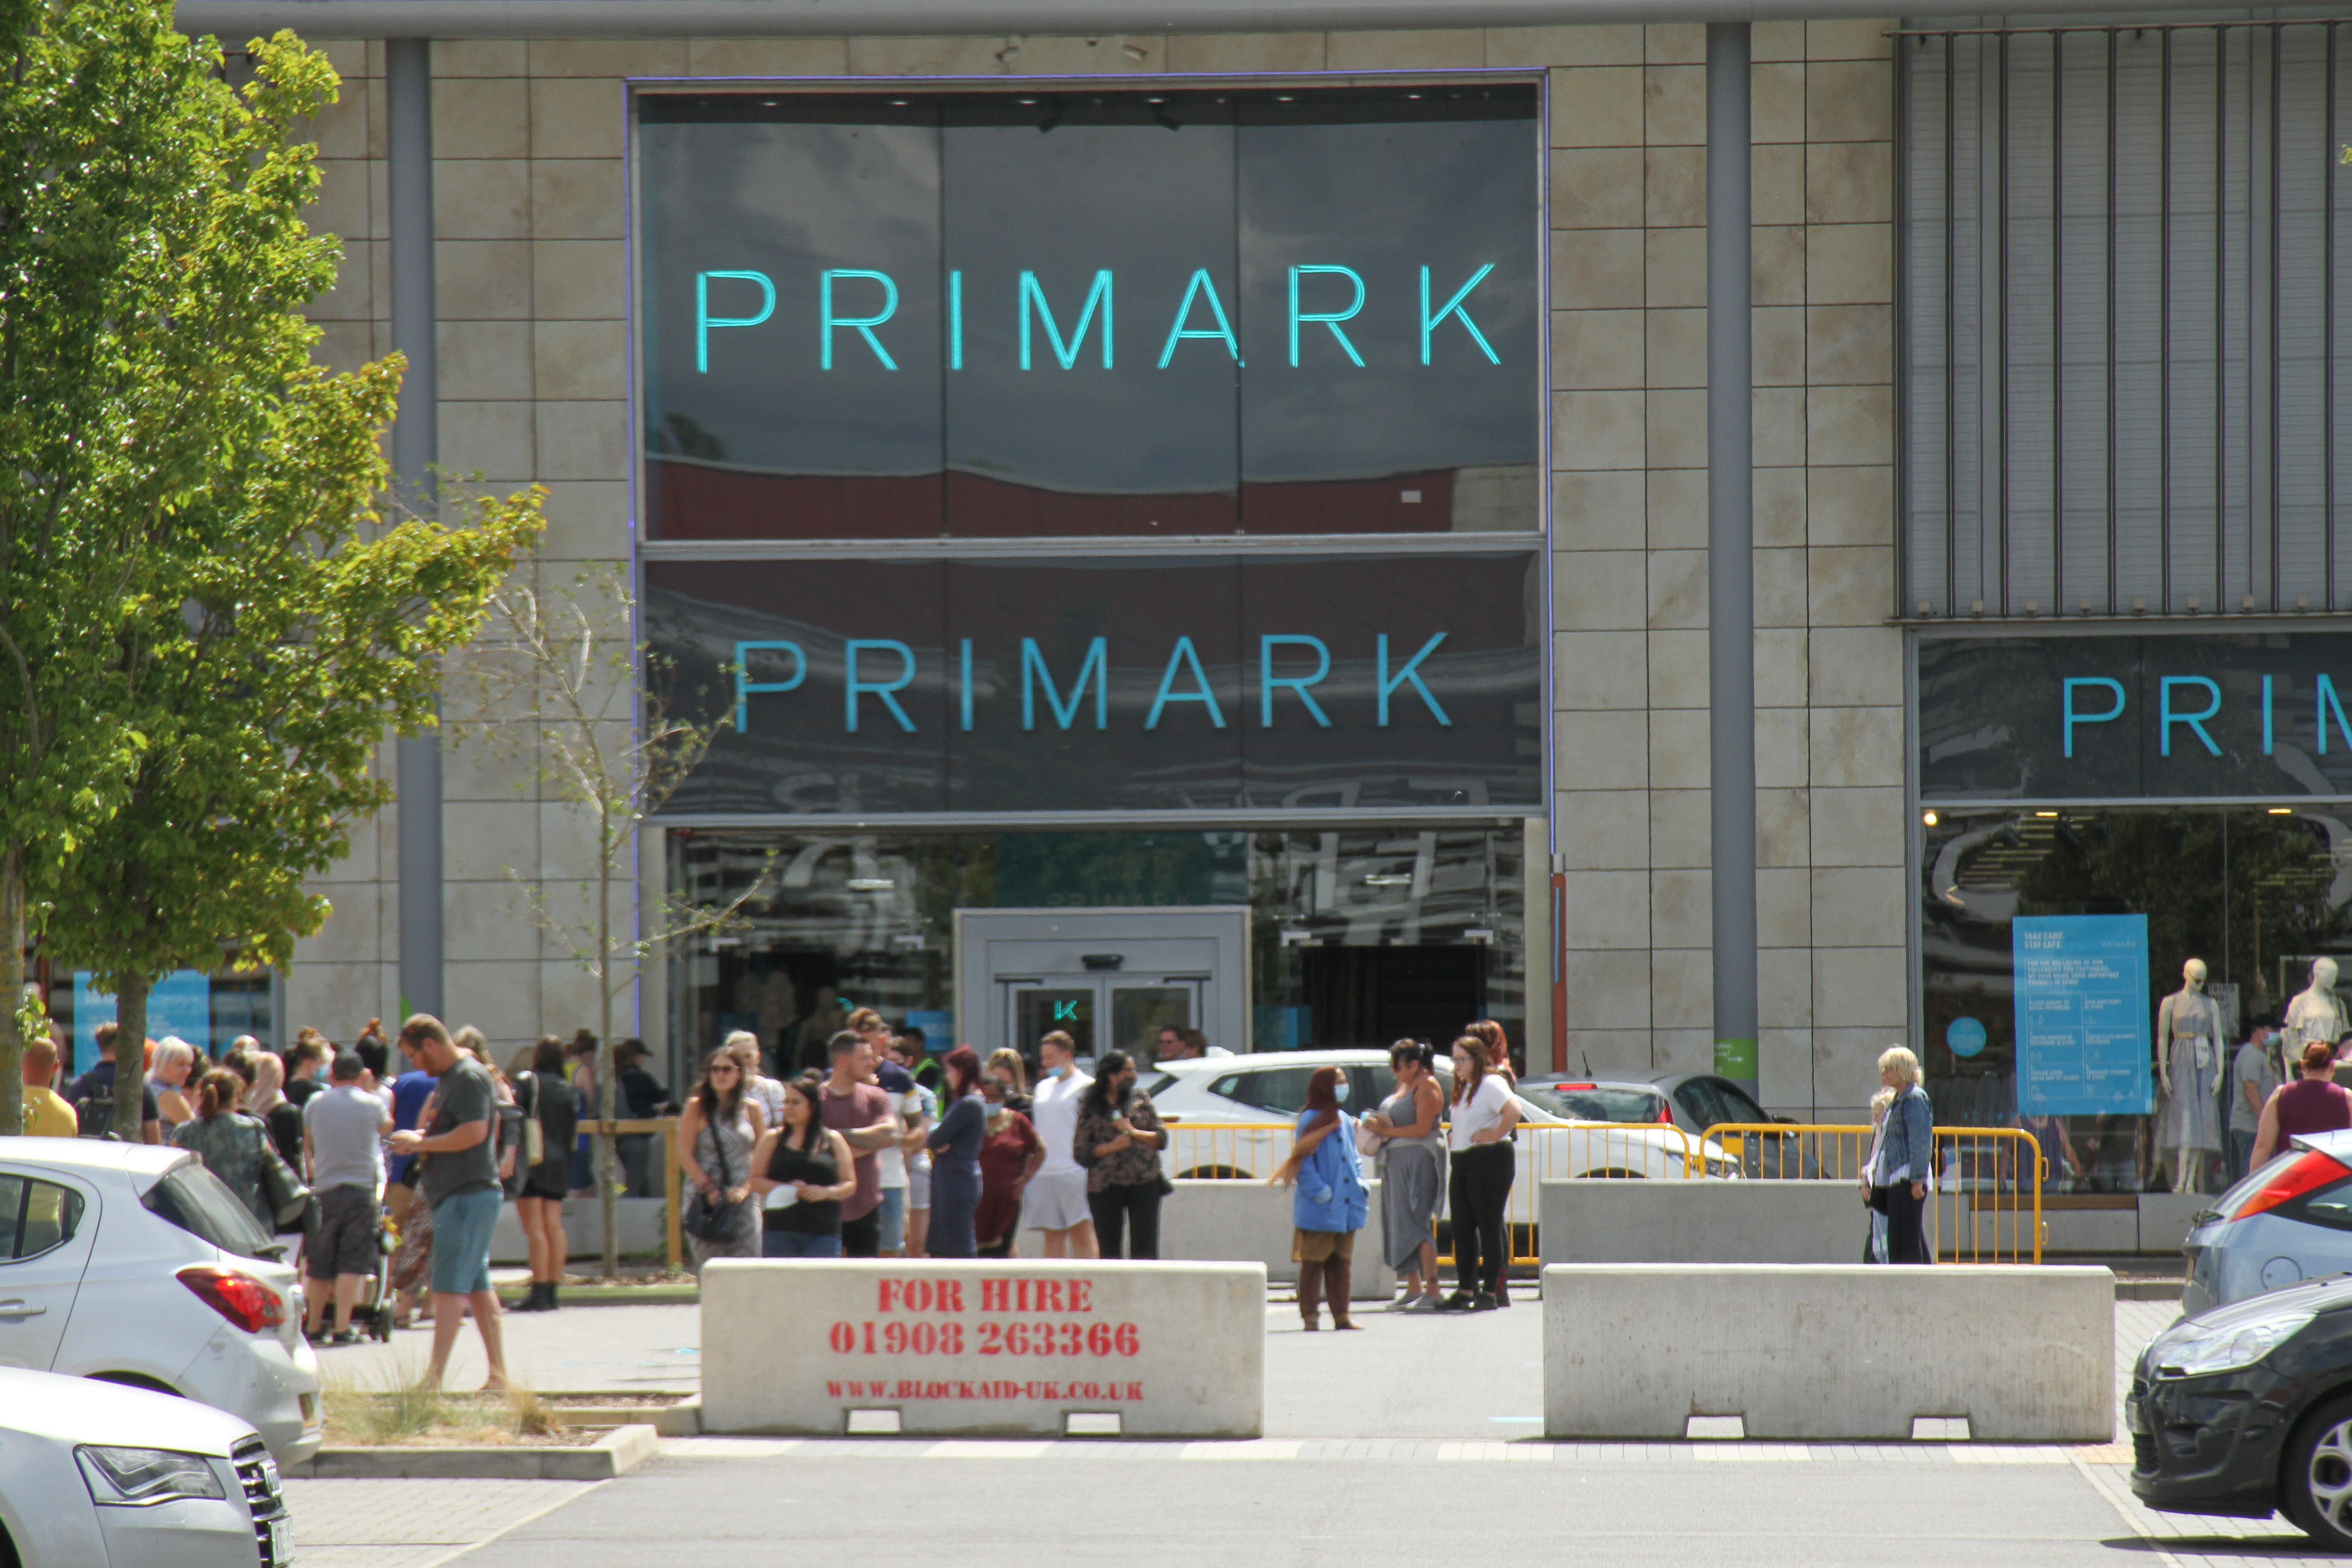 Customers queue outside the Primark store in Rushden Lakes. The Government has made it mandatory to wear face coverings in all public transport, supermarkets and indoor shopping centers as a measure to combat the spread of the novel coronavirus. (Photo by David Mbiyu / SOPA Images/Sipa USA)